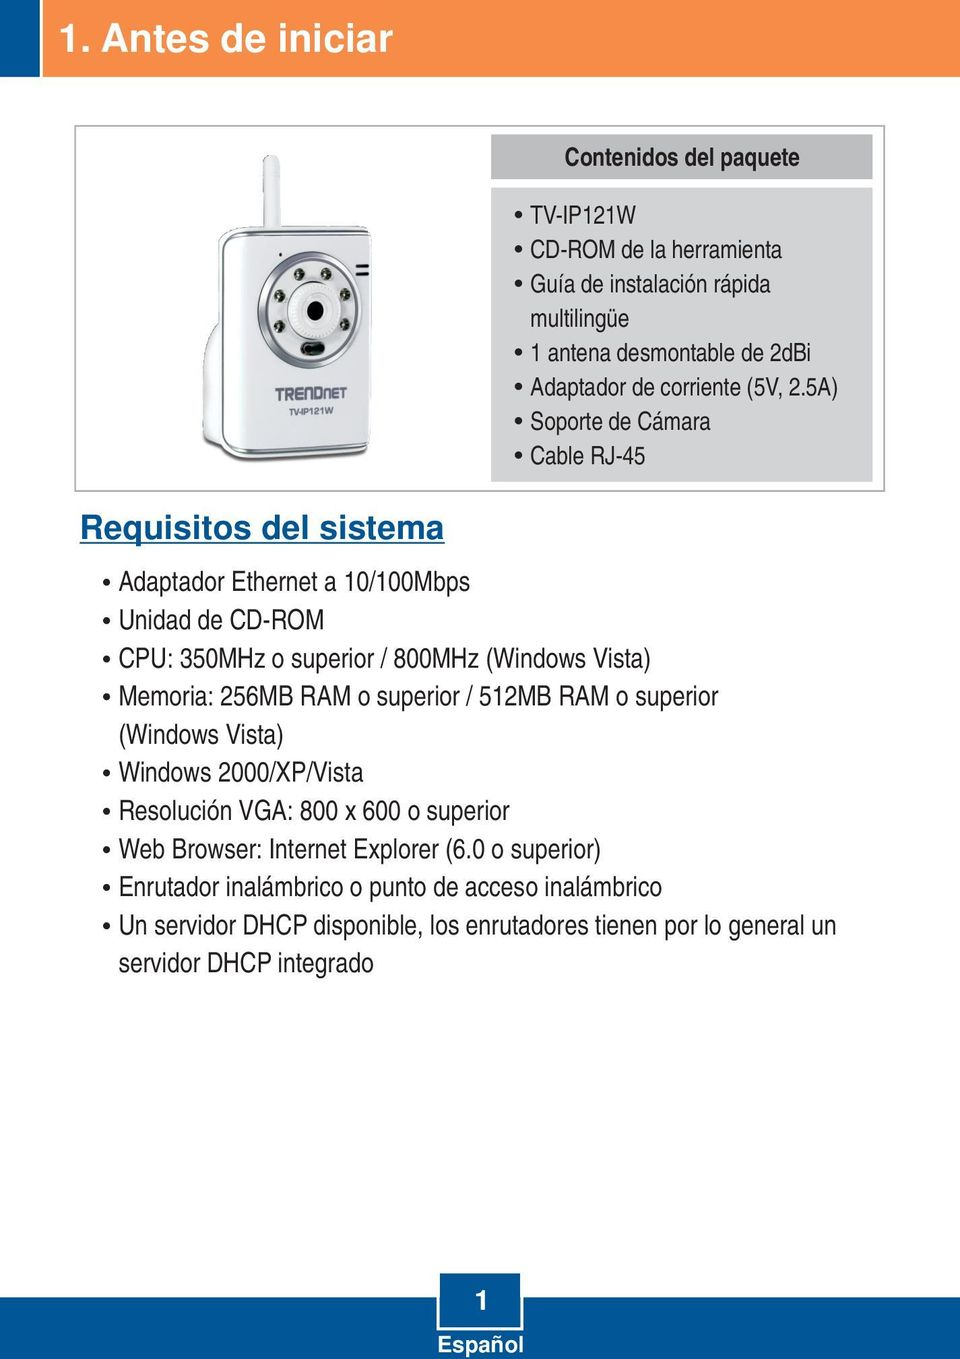 5A) Soporte de Cámara Cable RJ-45 Adaptador Ethernet a 10/100Mbps Unidad de CD-ROM CPU: 350MHz o superior / 800MHz (Windows Vista) M emoria: 256MB RAM o superior /